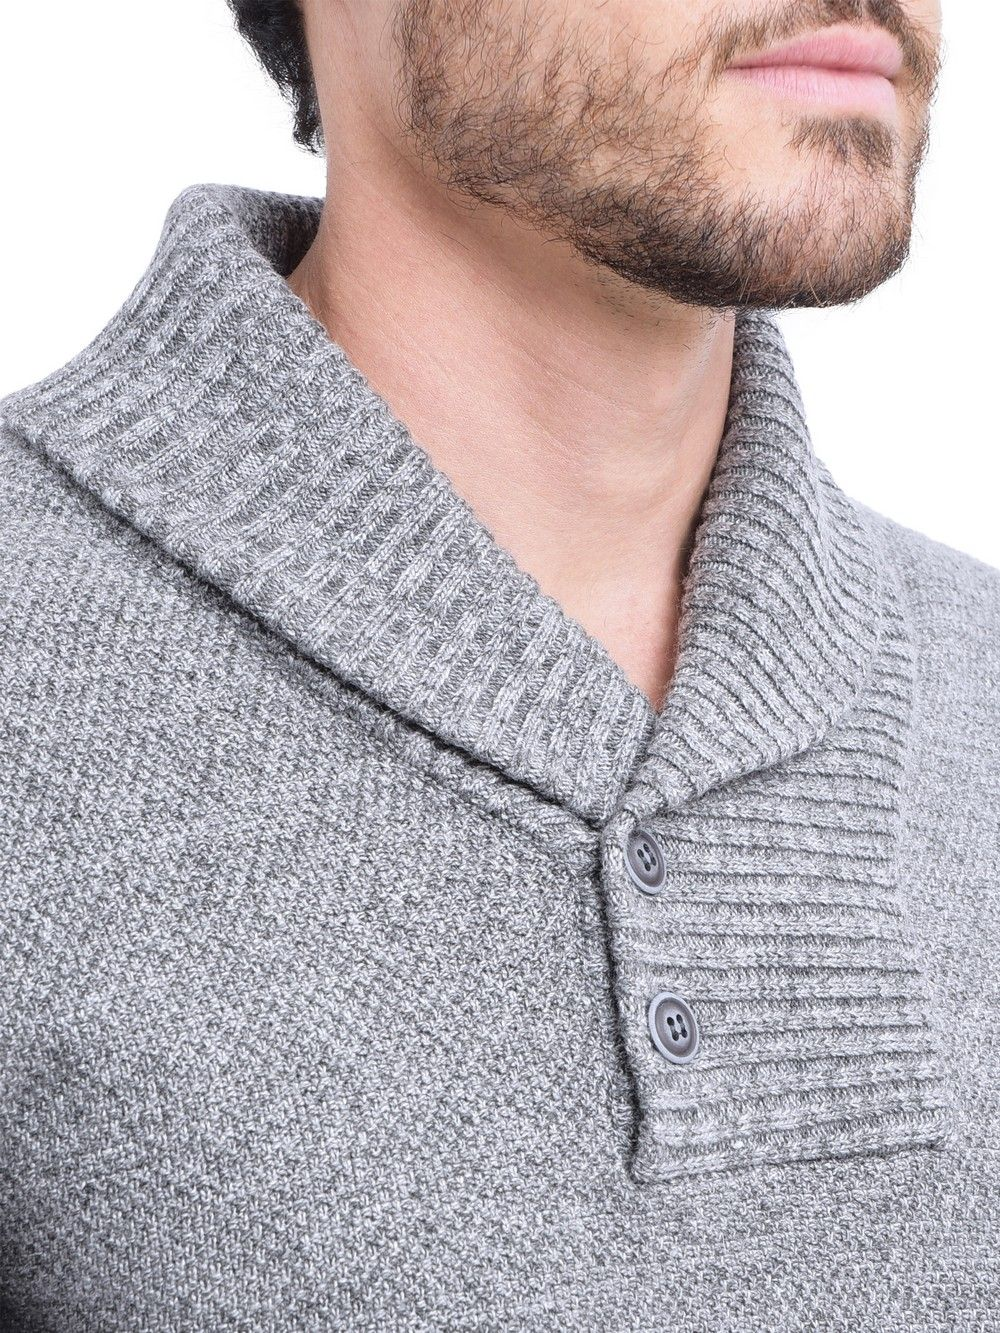 C&JO Shawl Collar Jacquard Sweater with Butons in Grey